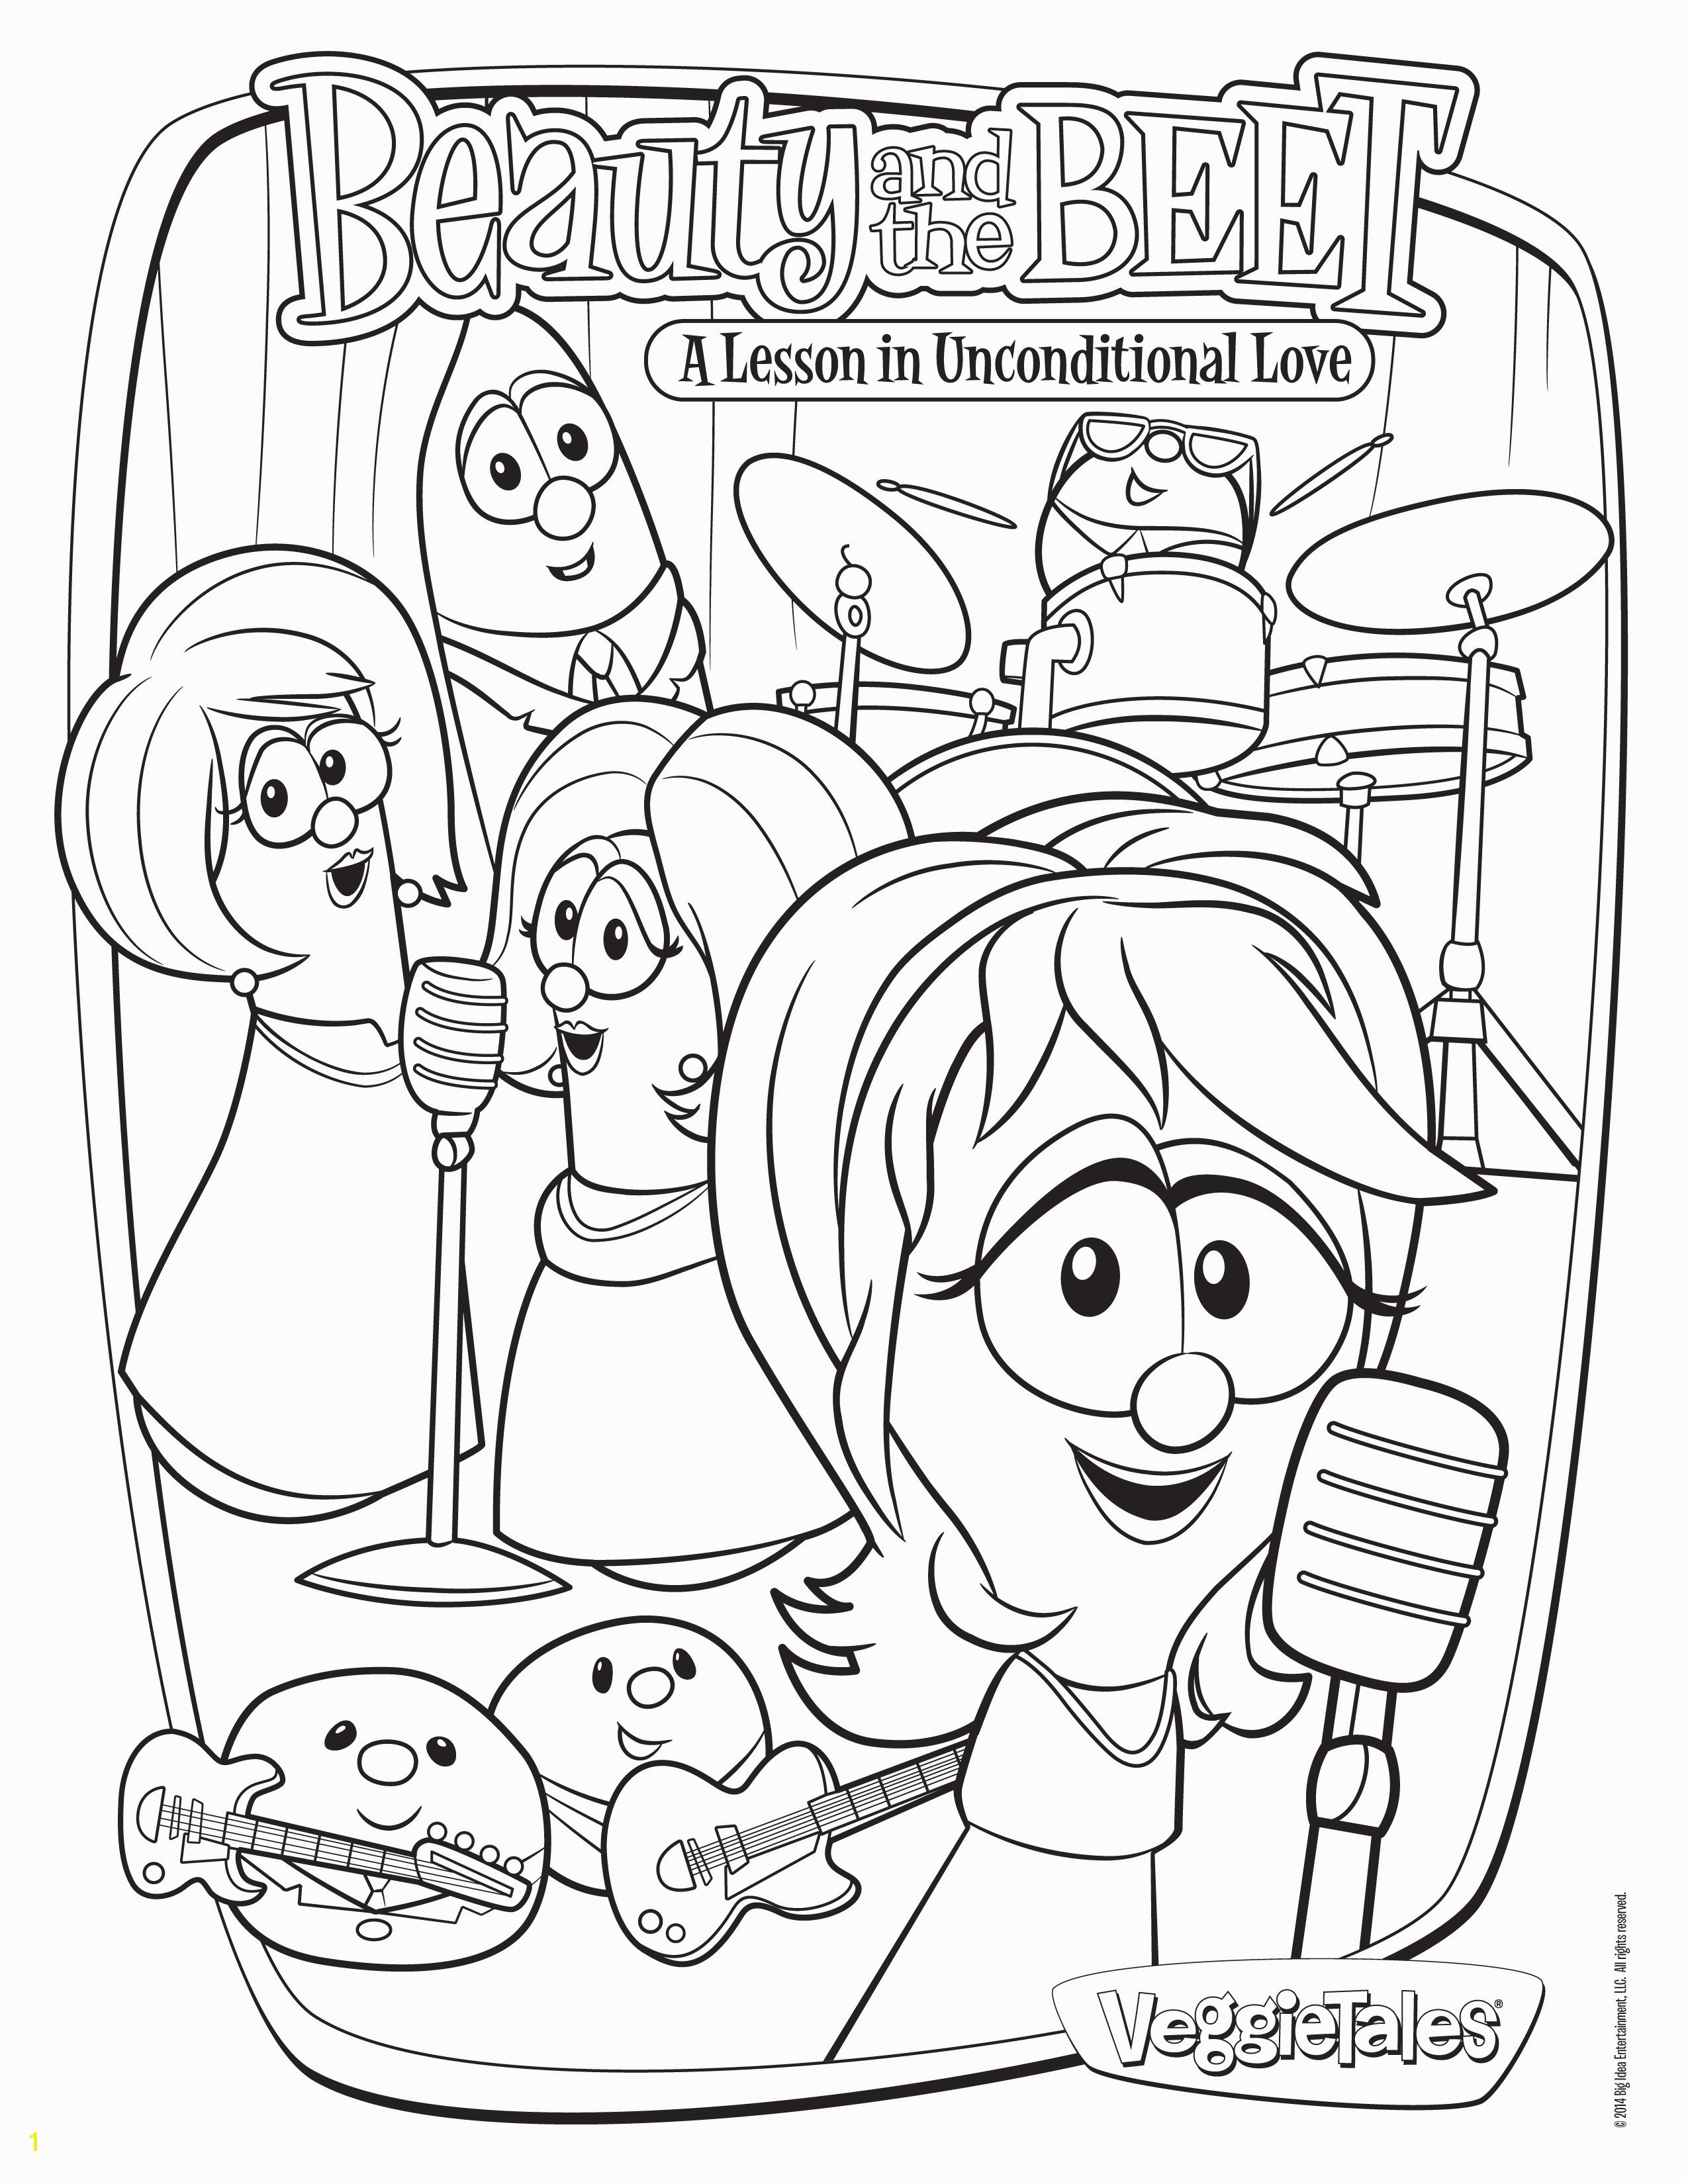 Prince Caspian Coloring Pages Inspirational Clc Bookcenter Msitevtalesresources Clcbookcenter 17 Fresh Prince Caspian Coloring Pages